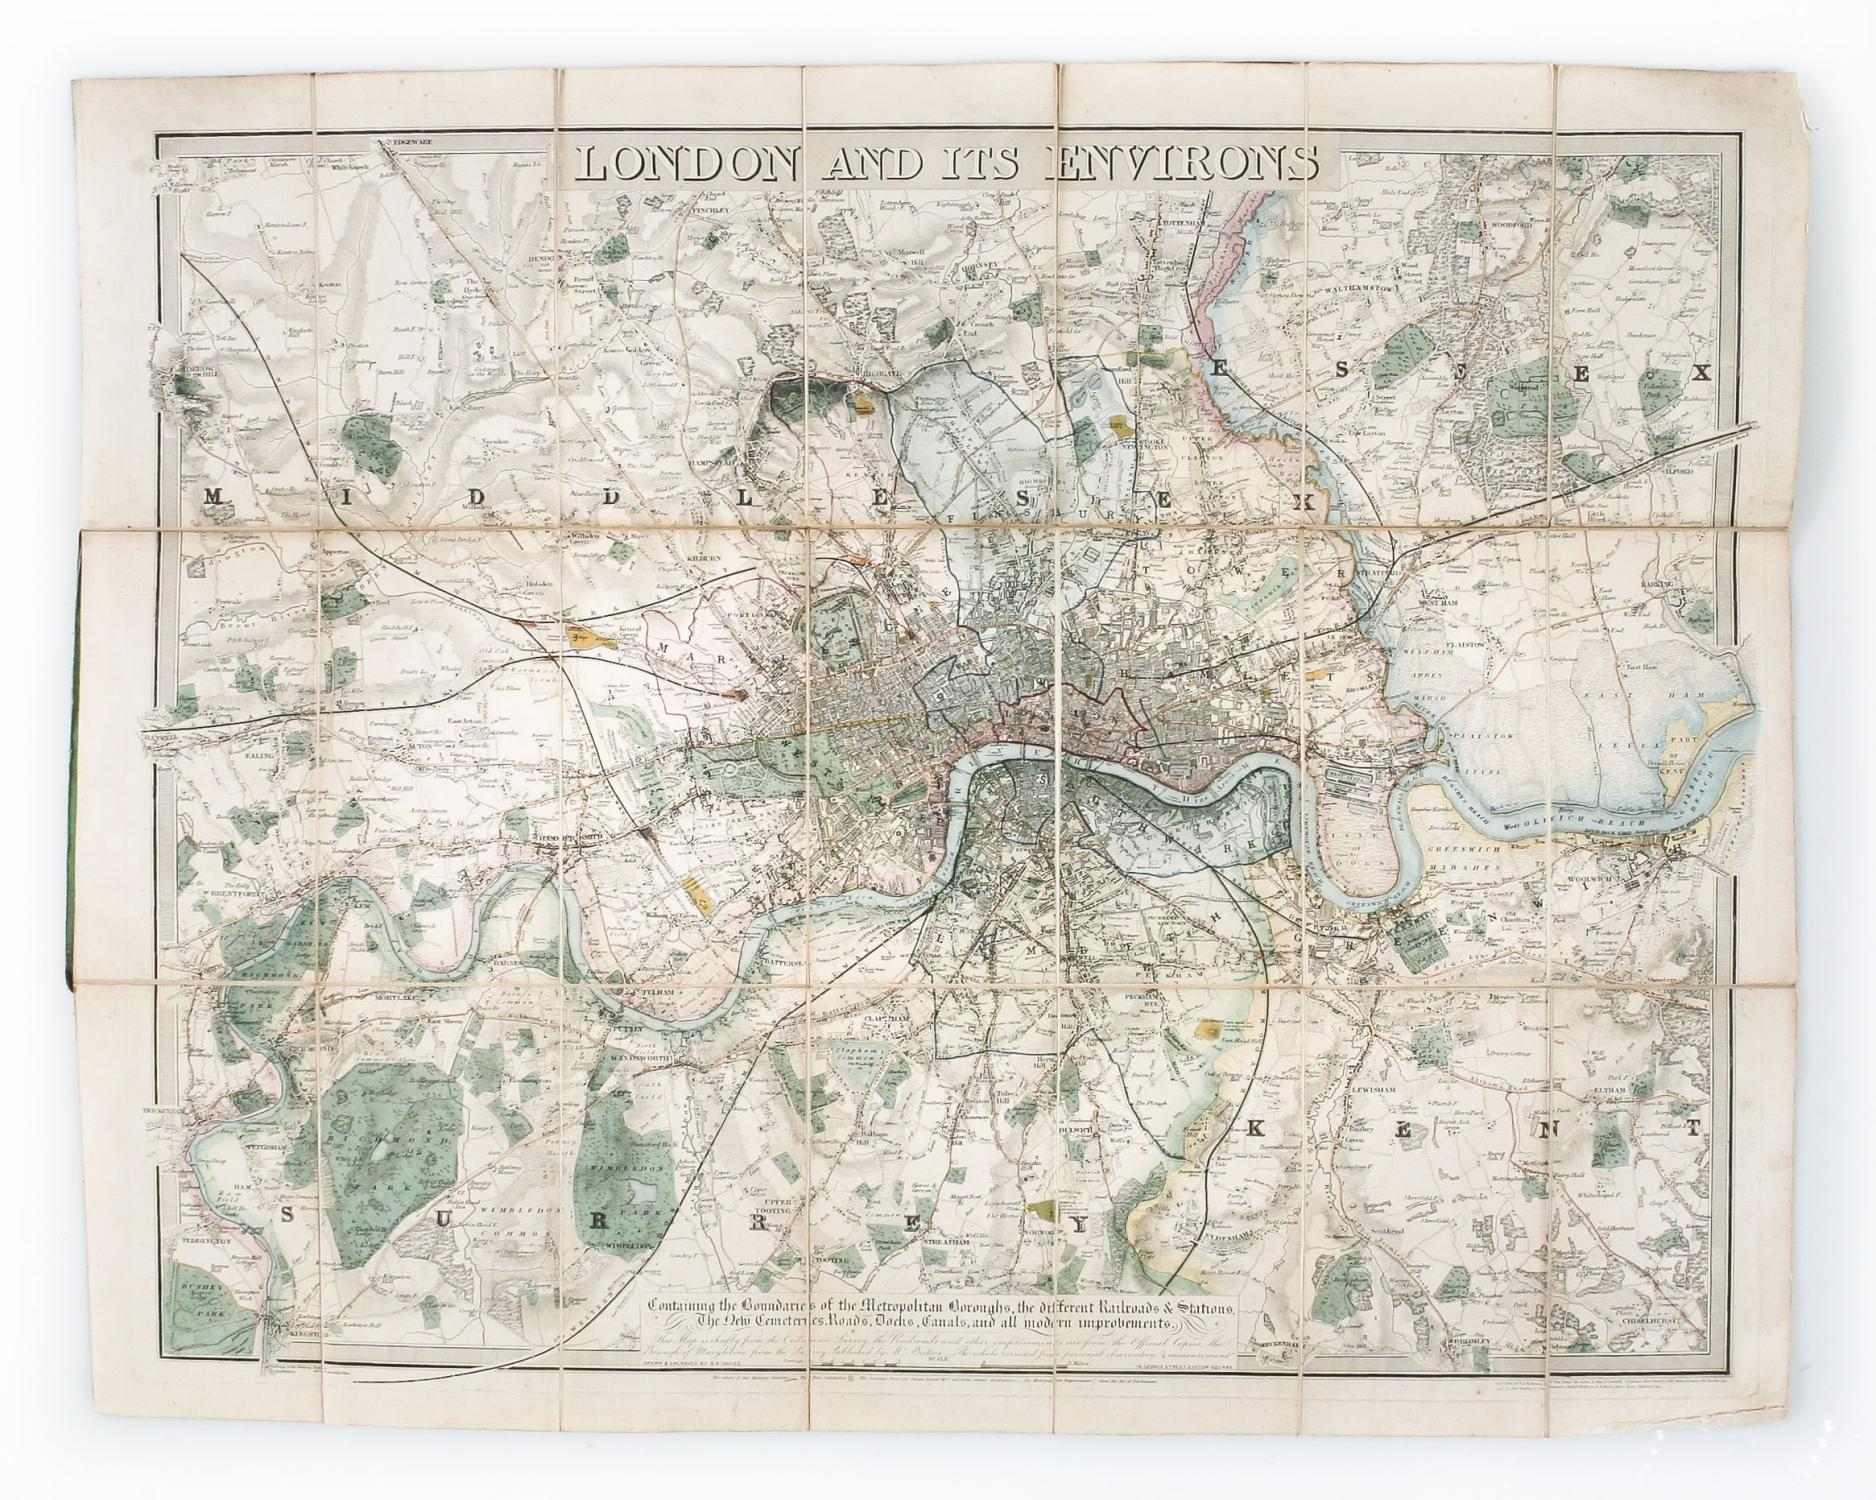 London and its Environs containing the Boundaries of the Metropolitan Boroughs, the different Railroads & Stations, the new cemeteries, roads, docks,